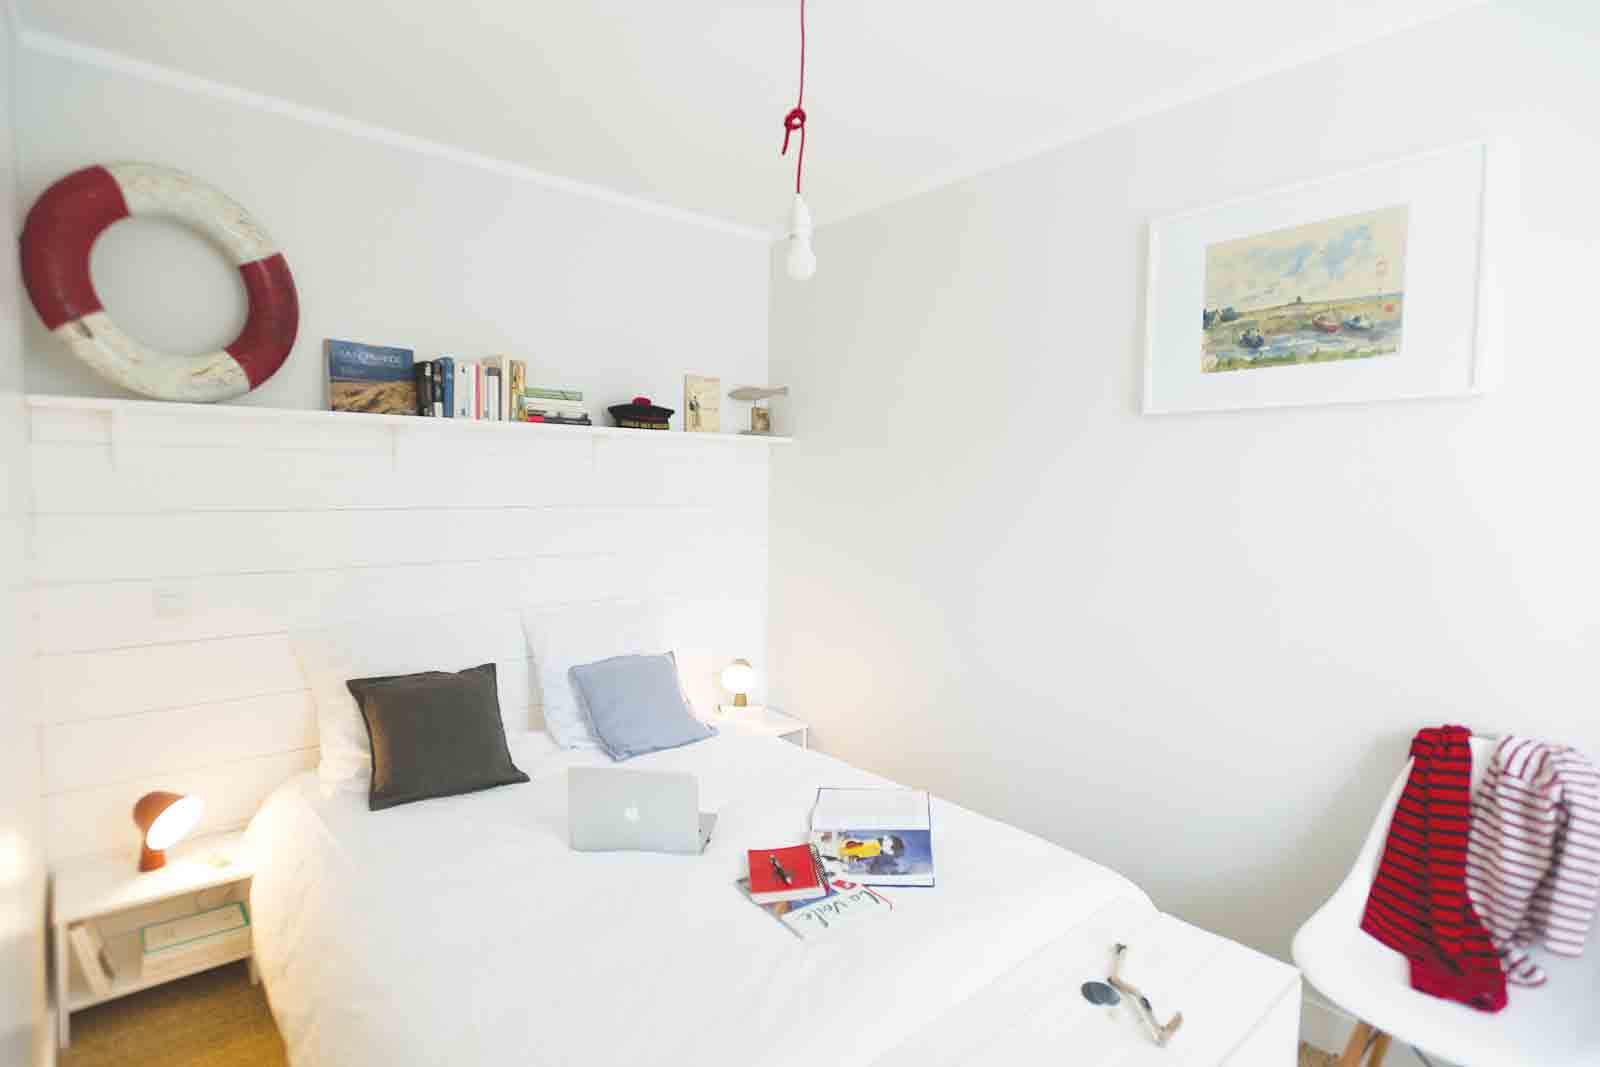 Sailor's Apartment  - Port-en-Bessin, Normandy, France   vacation homes for rent